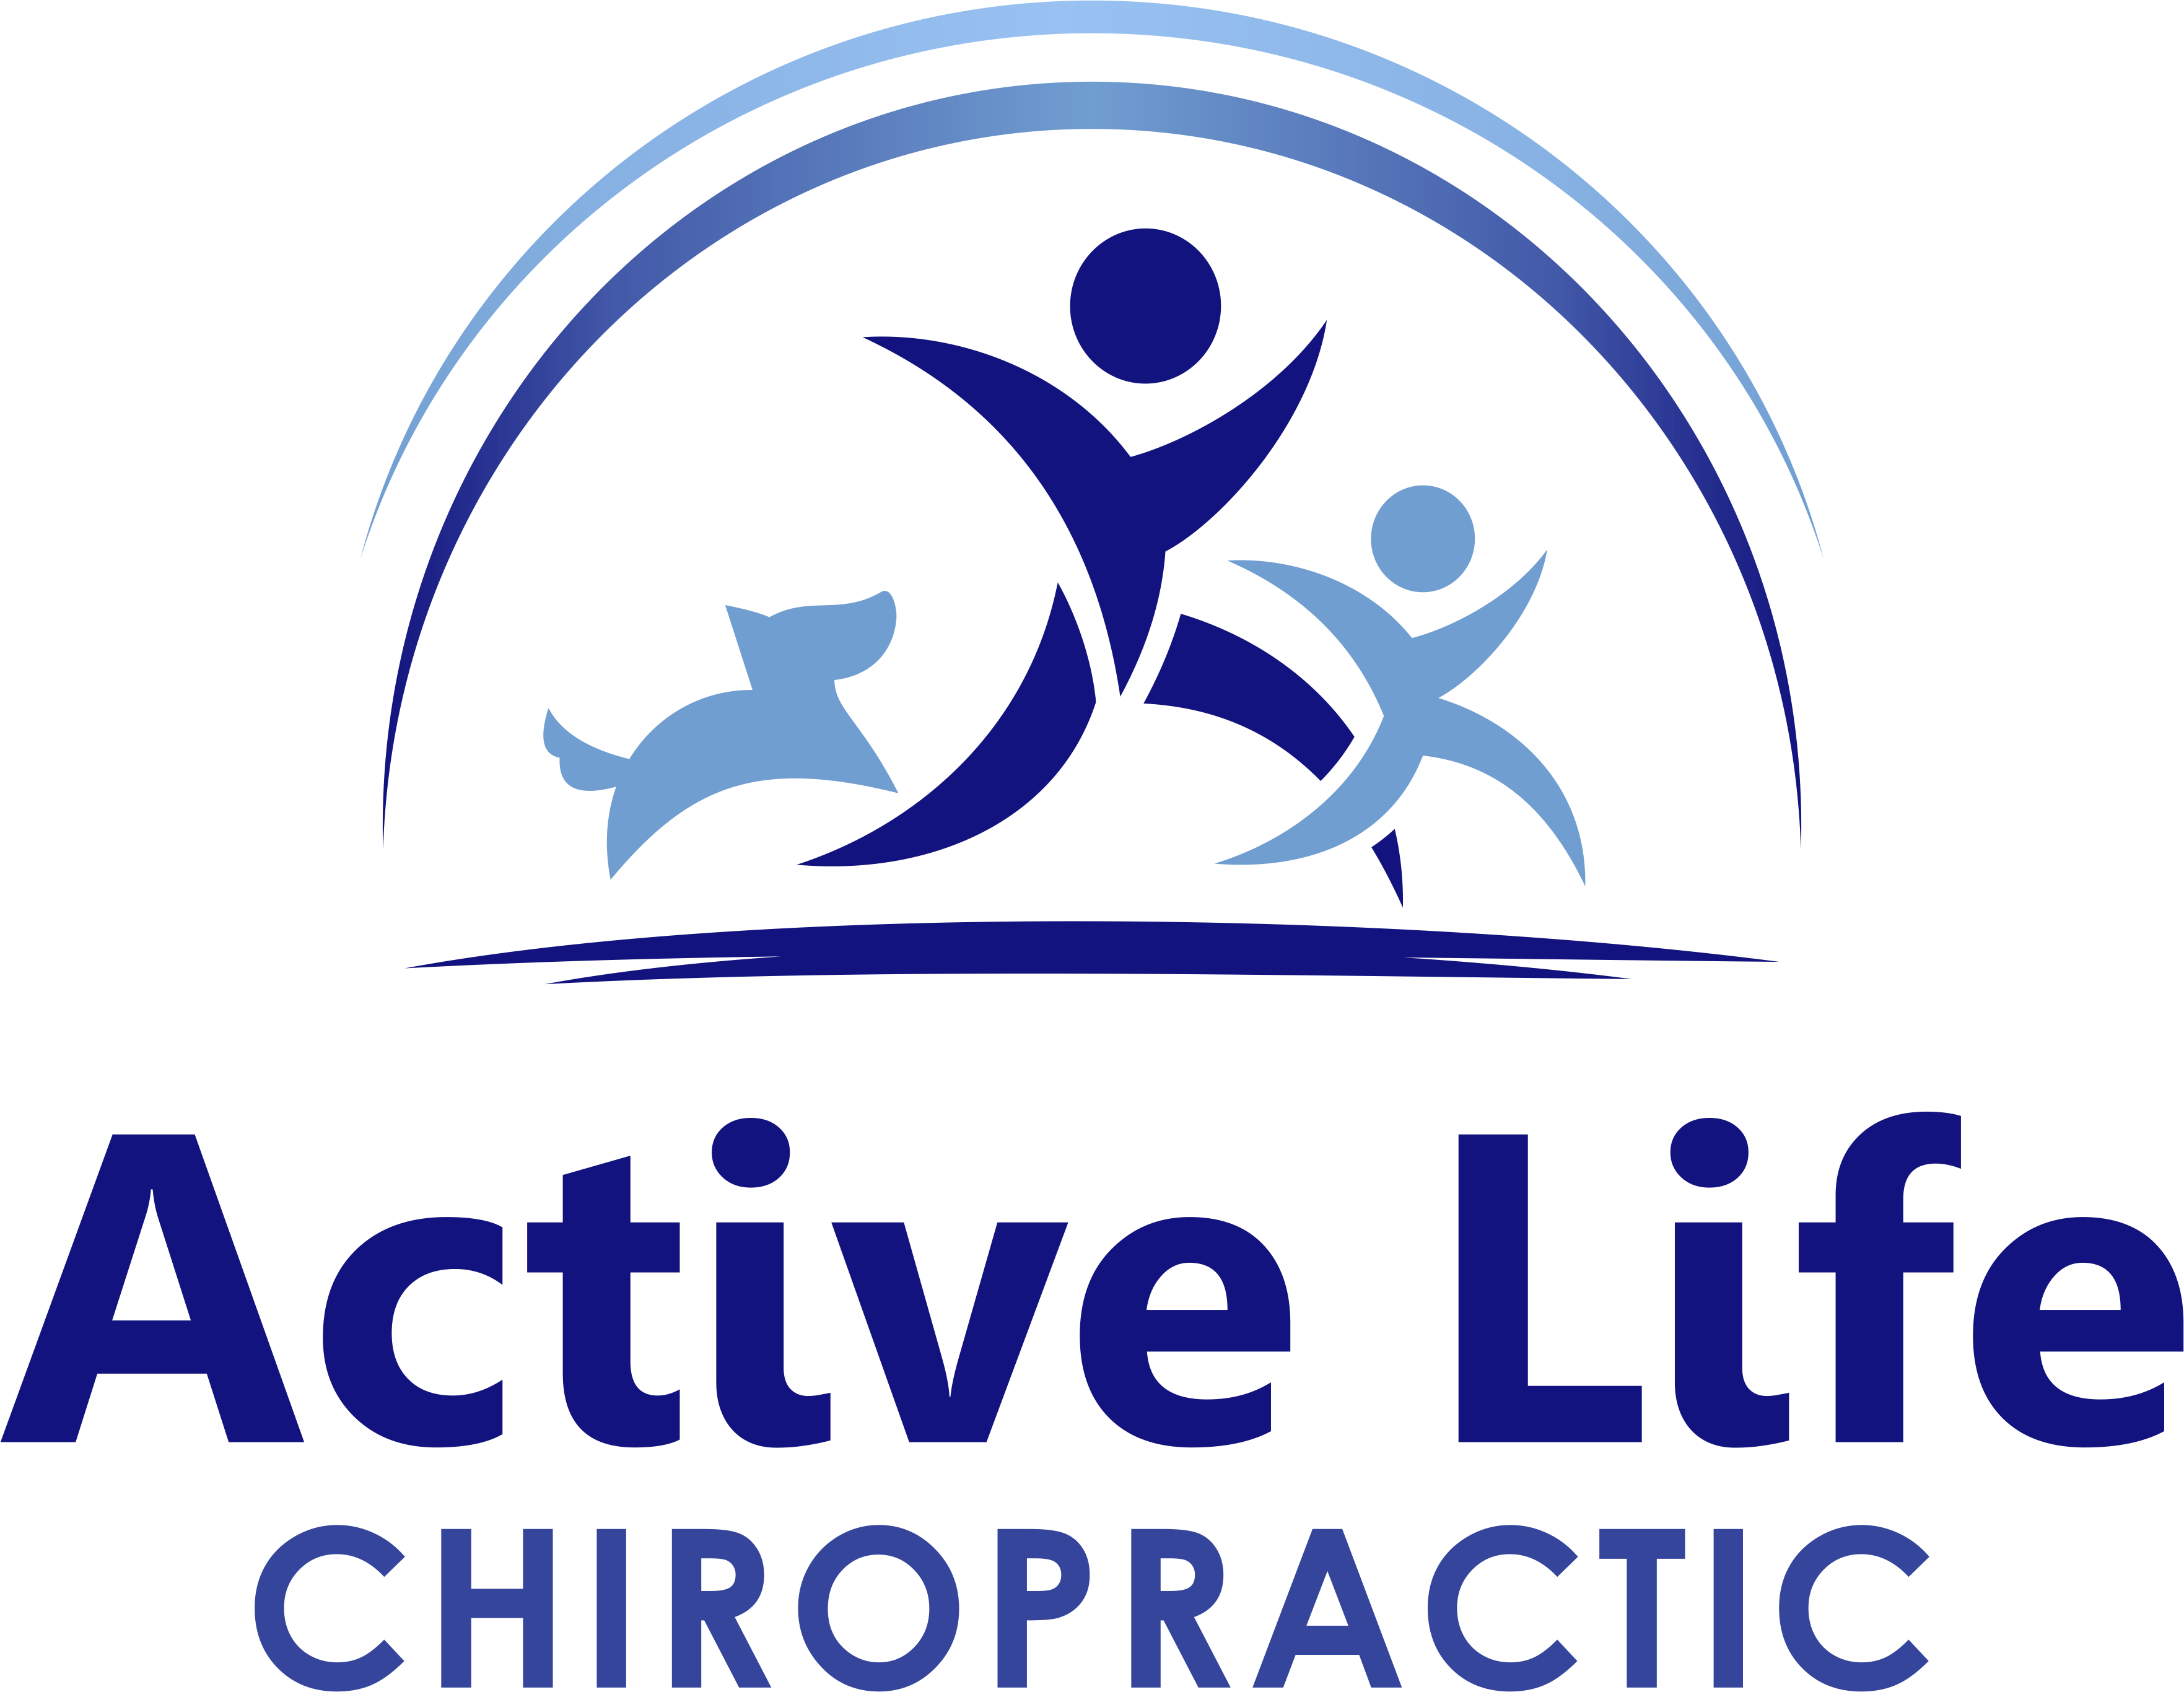 Wellness chiropractic office needs a new logo conveying health & movement